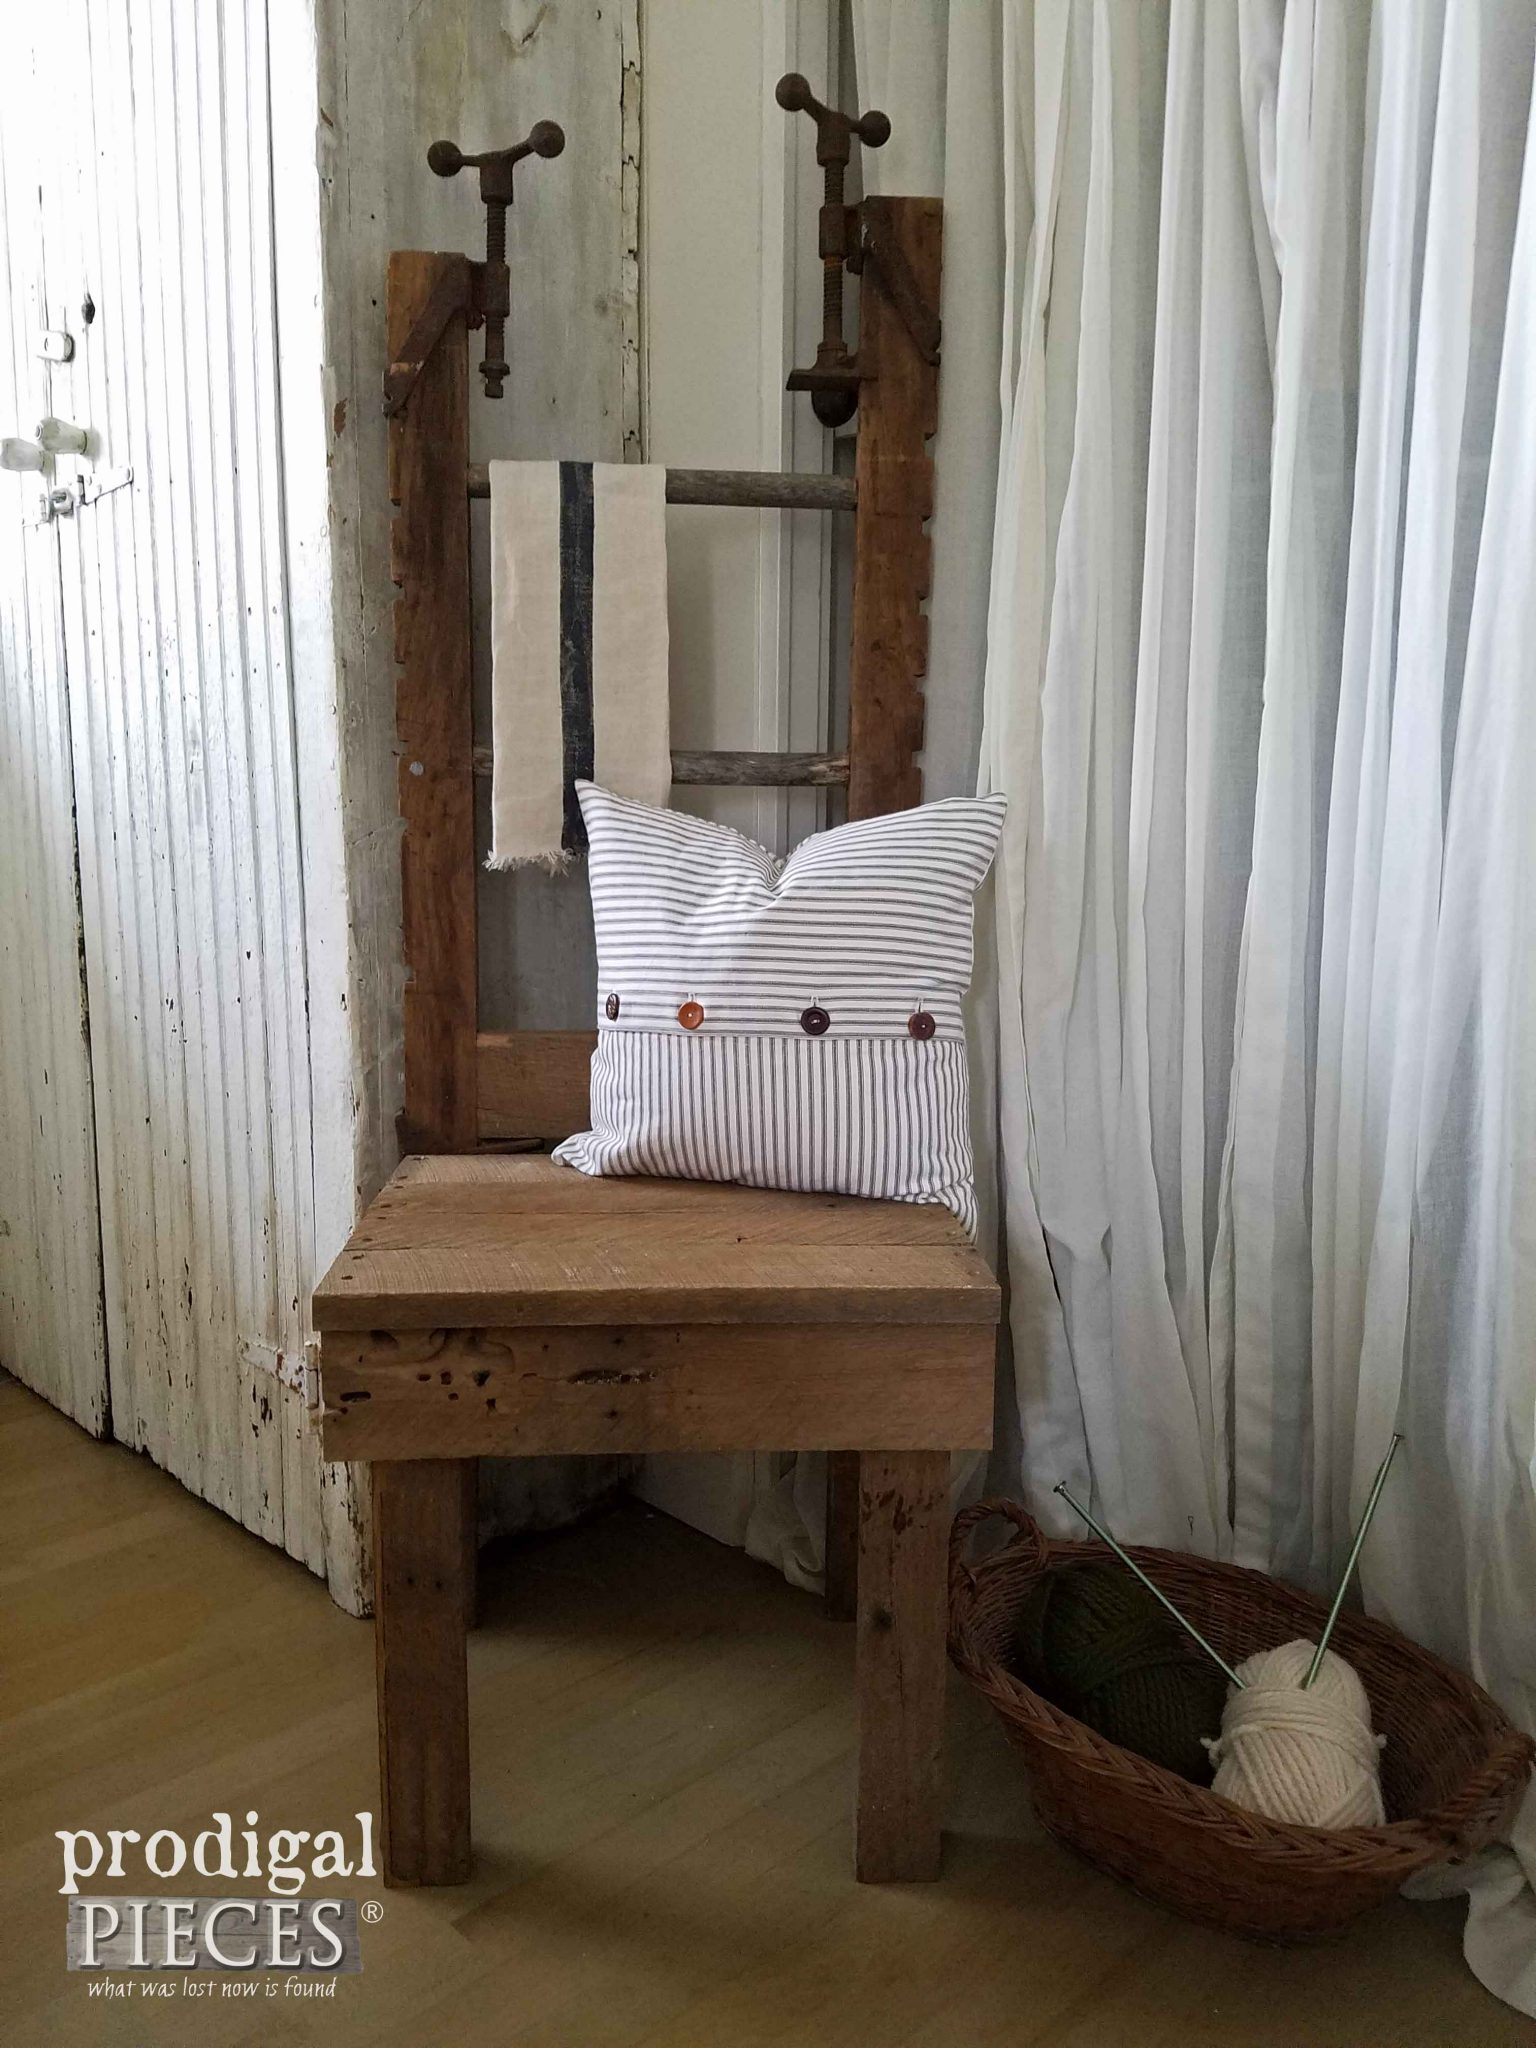 Farmhouse Style Chair Made of Repurposed Materials by Prodigal Pieces | prodigalpieces.com